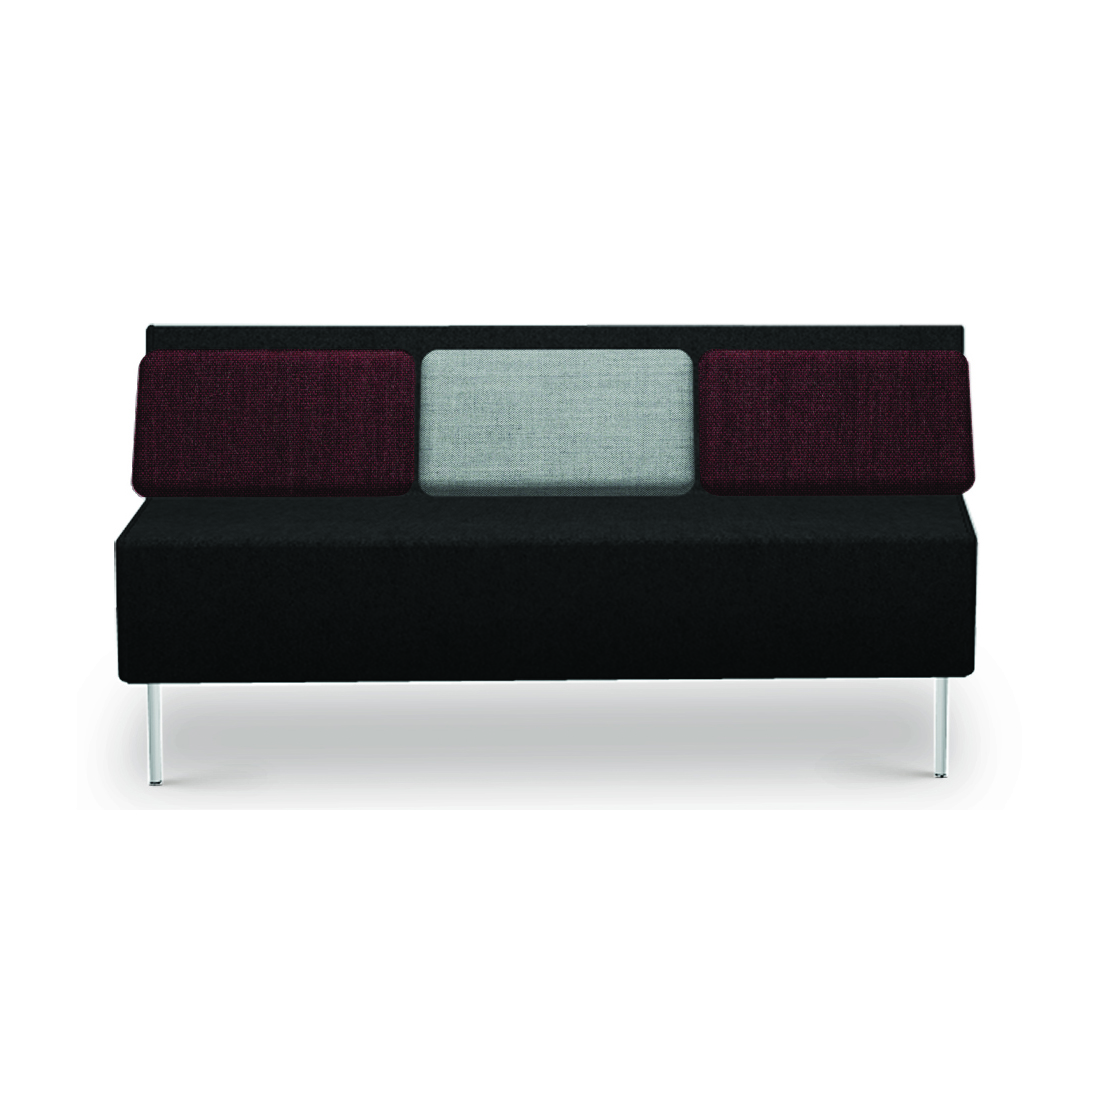 Sofa 3-seater, both sides mitred by Claesson Koivisto Rune